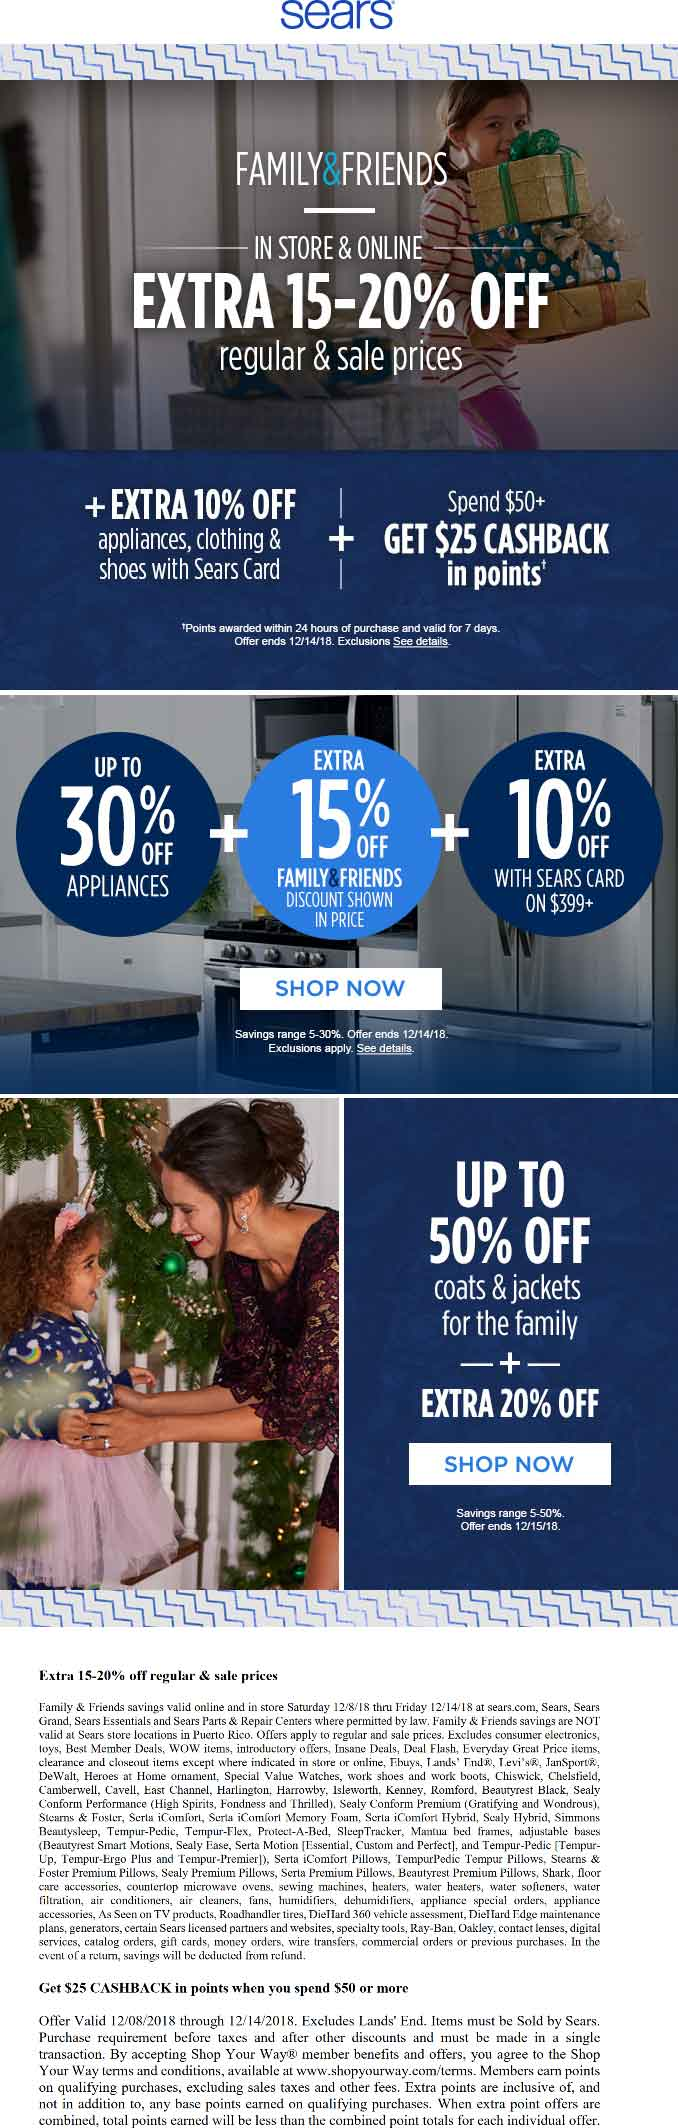 Sears Coupon October 2019 15-20% off at Sears, ditto online